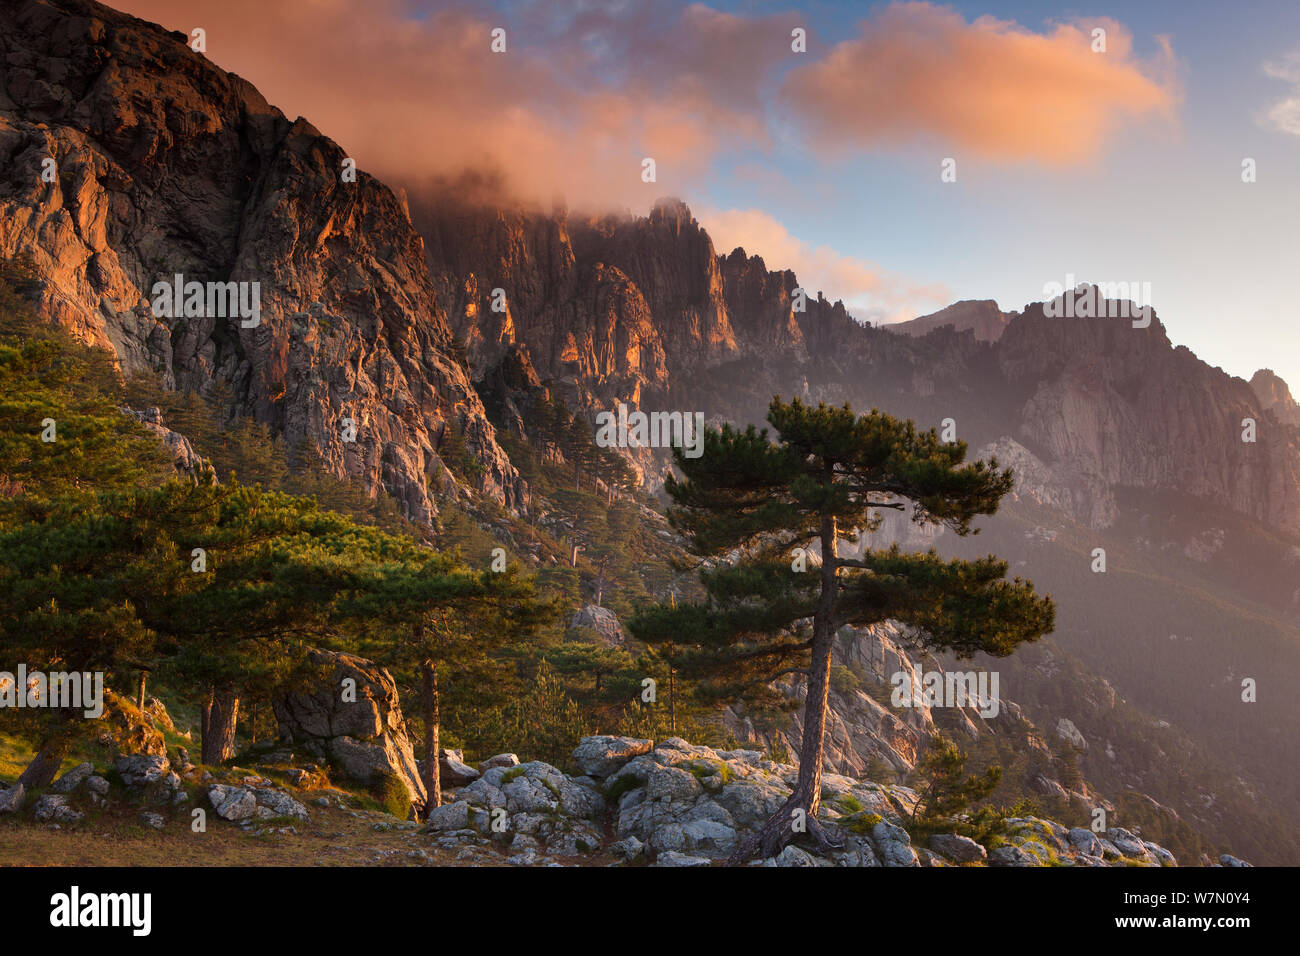 The Col de Bavella with Pine tree at dawn, Corsica, France. June 2011. Stock Photo